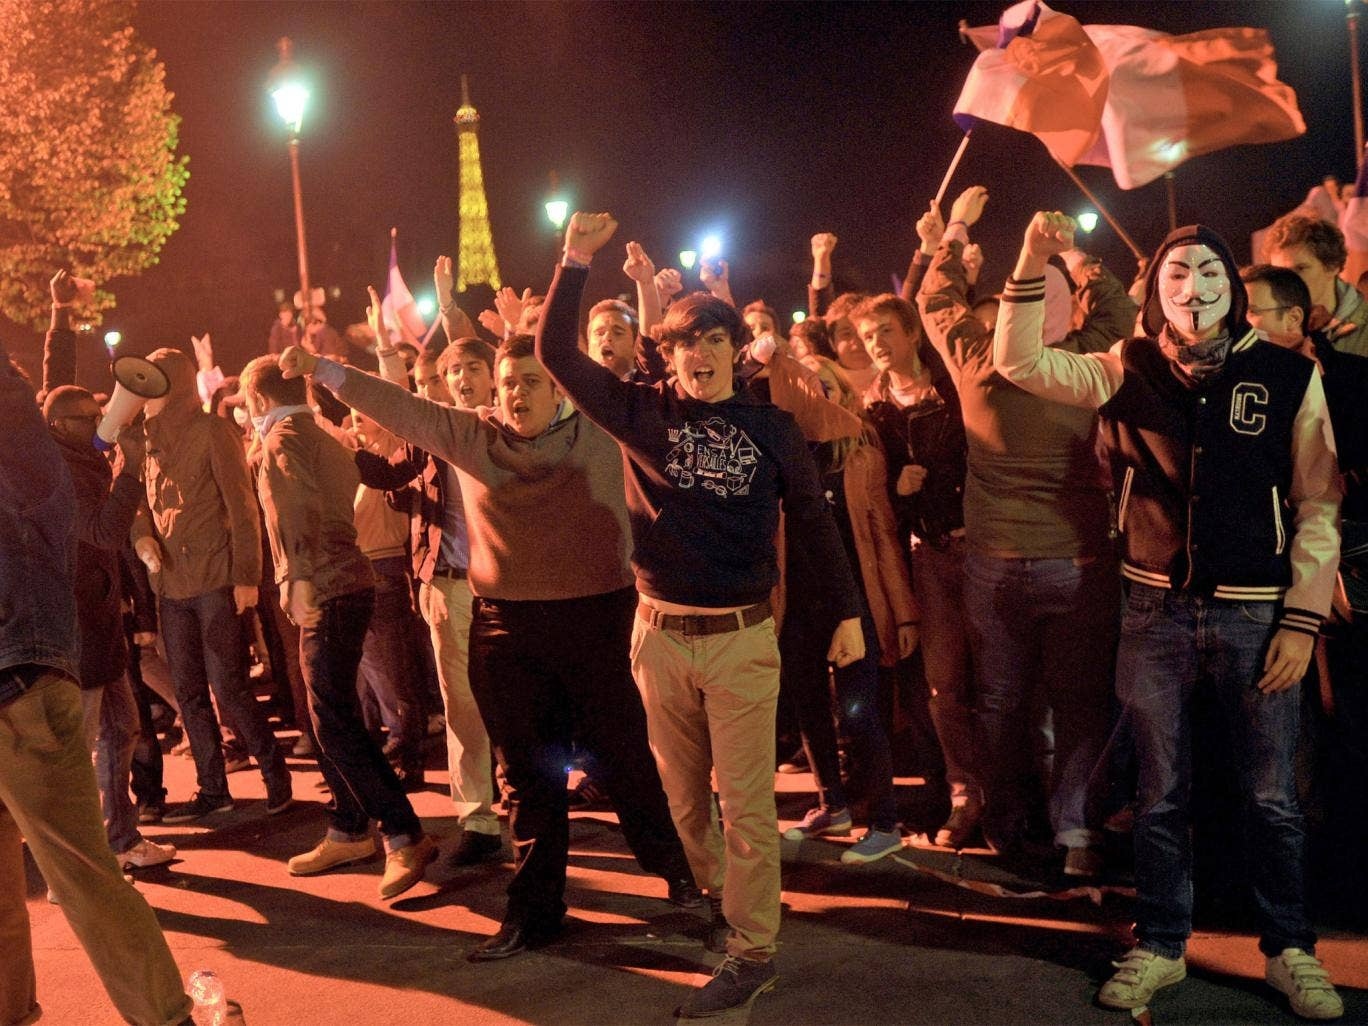 Anti-gay marriage protesters in Paris on Tuesday night